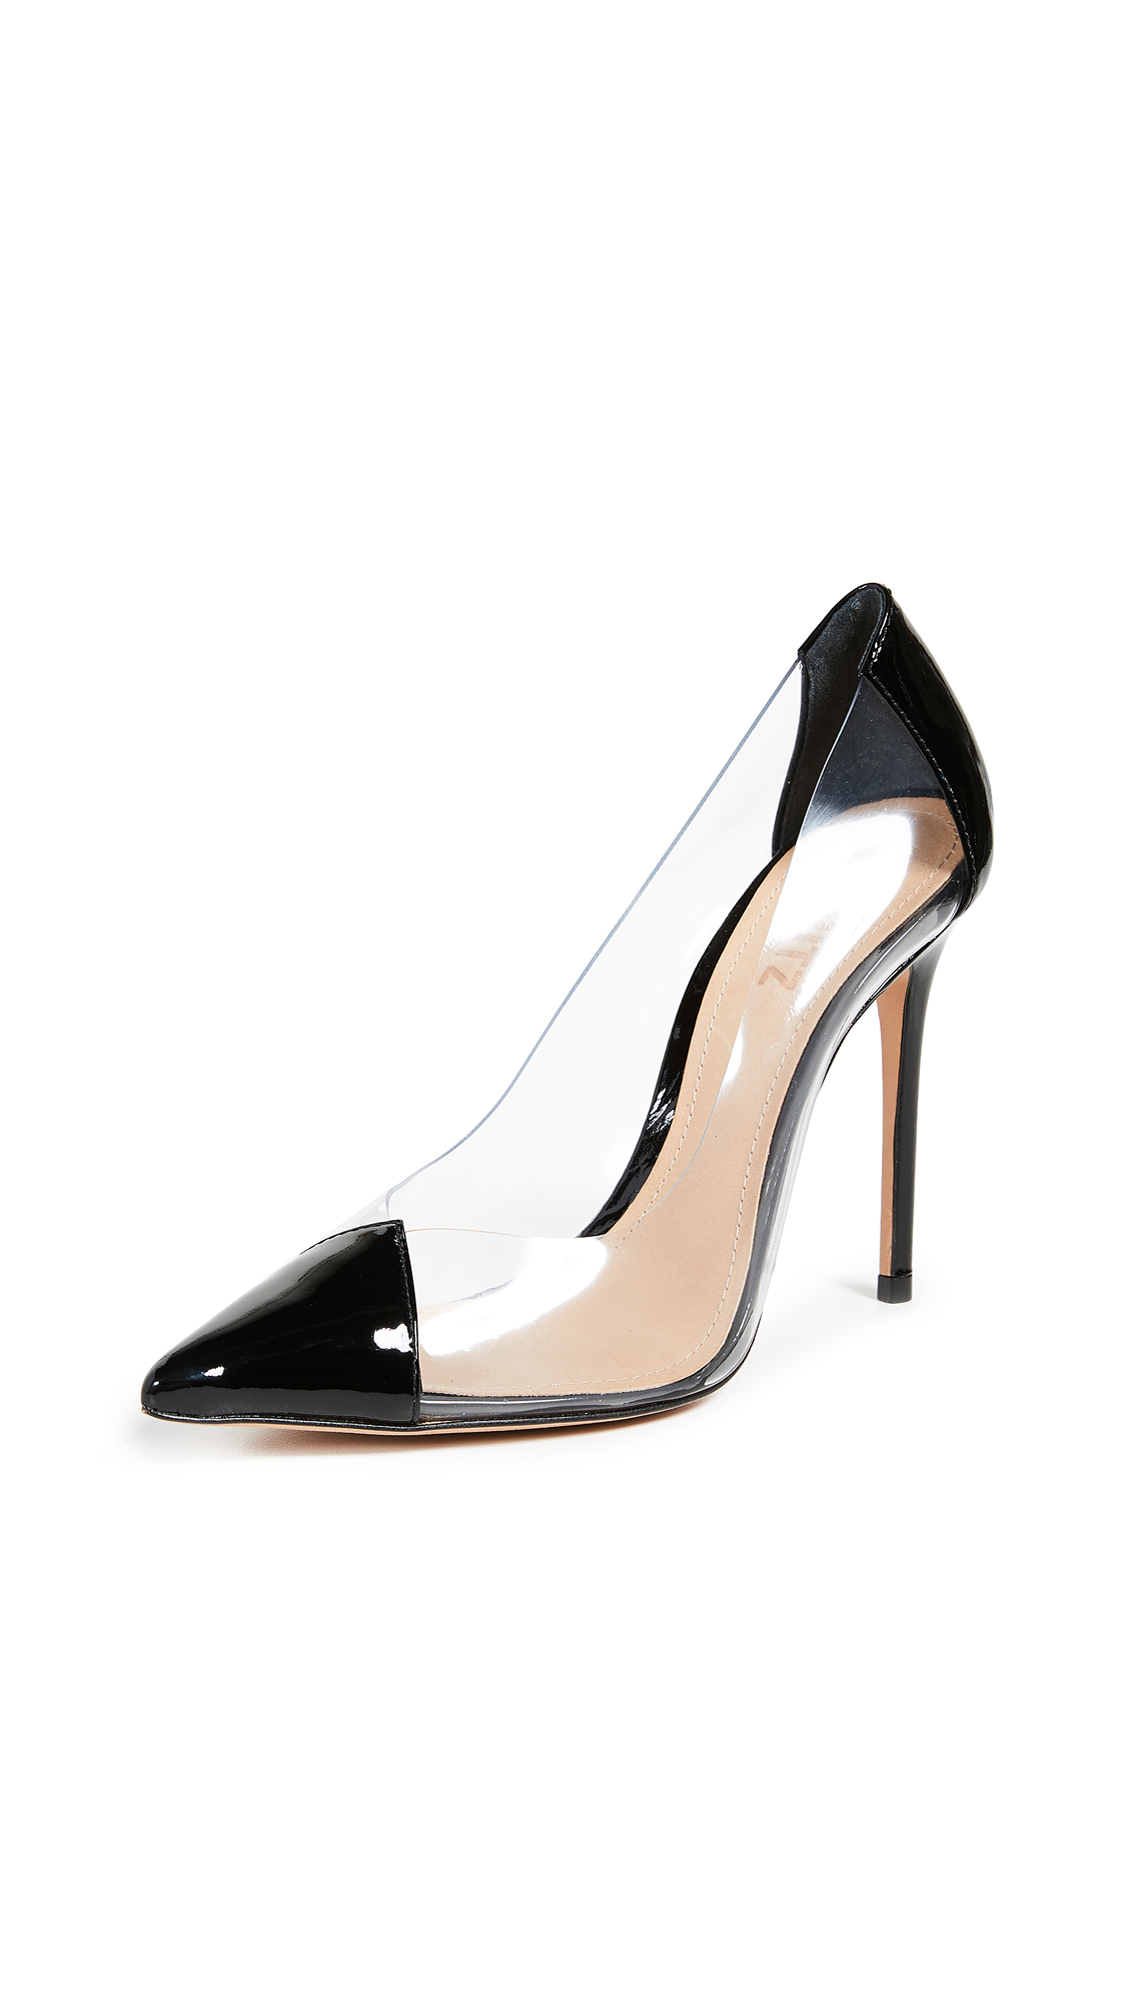 Schutz Cendi Point Toe Pumps - Black